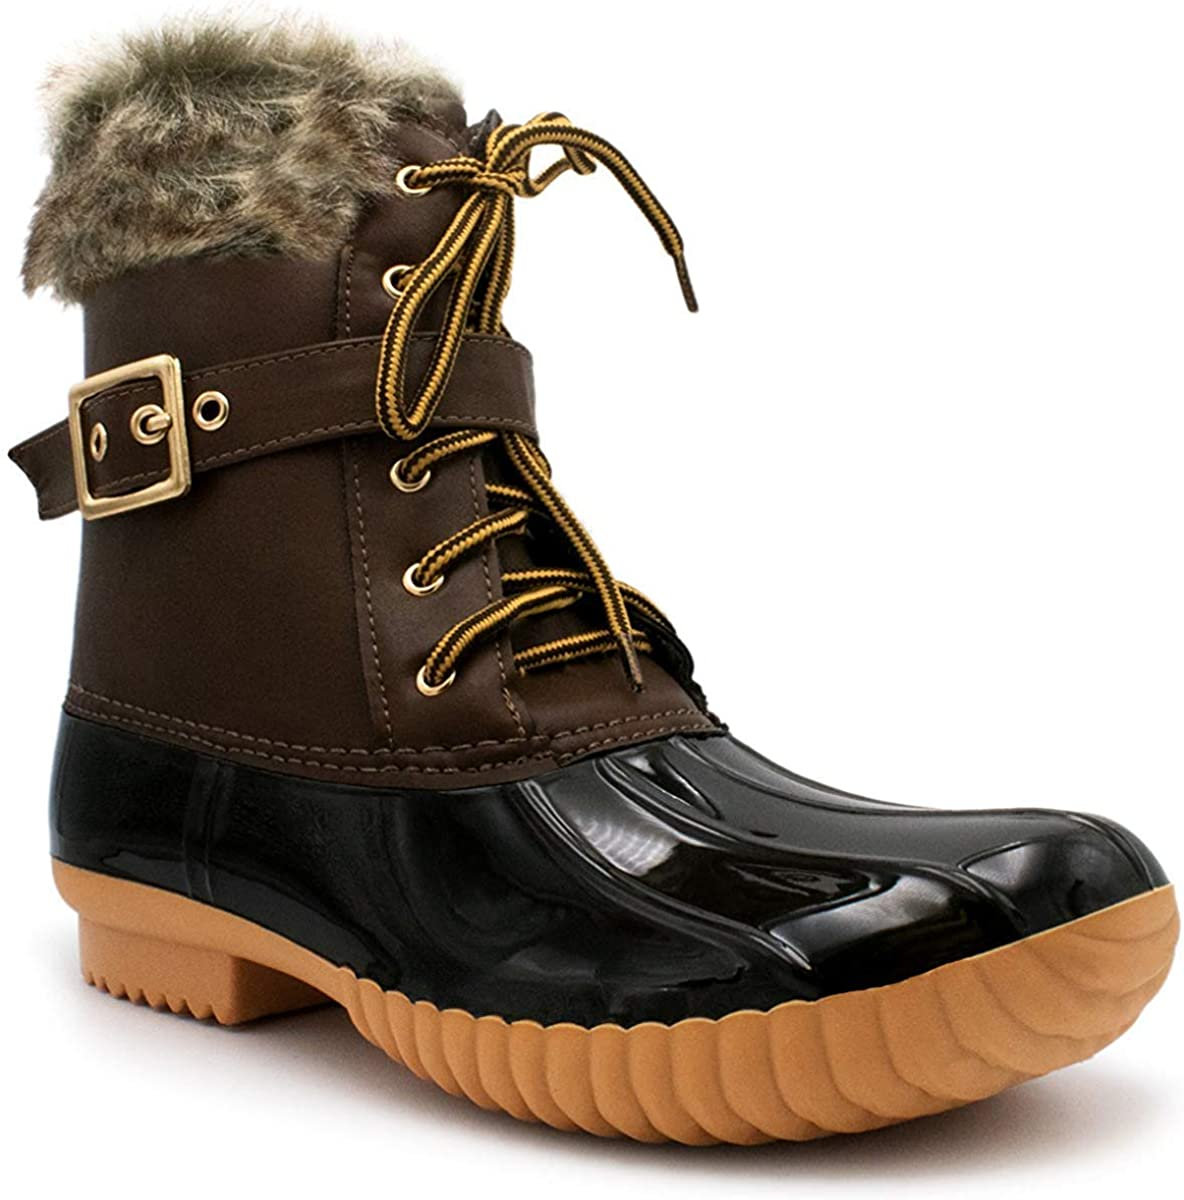 Nature Breeze Duck-01 Women's Chic Lace Up Buckled Duck Waterproof Snow Boots, TPS Duck-01 Brown Size 7.5